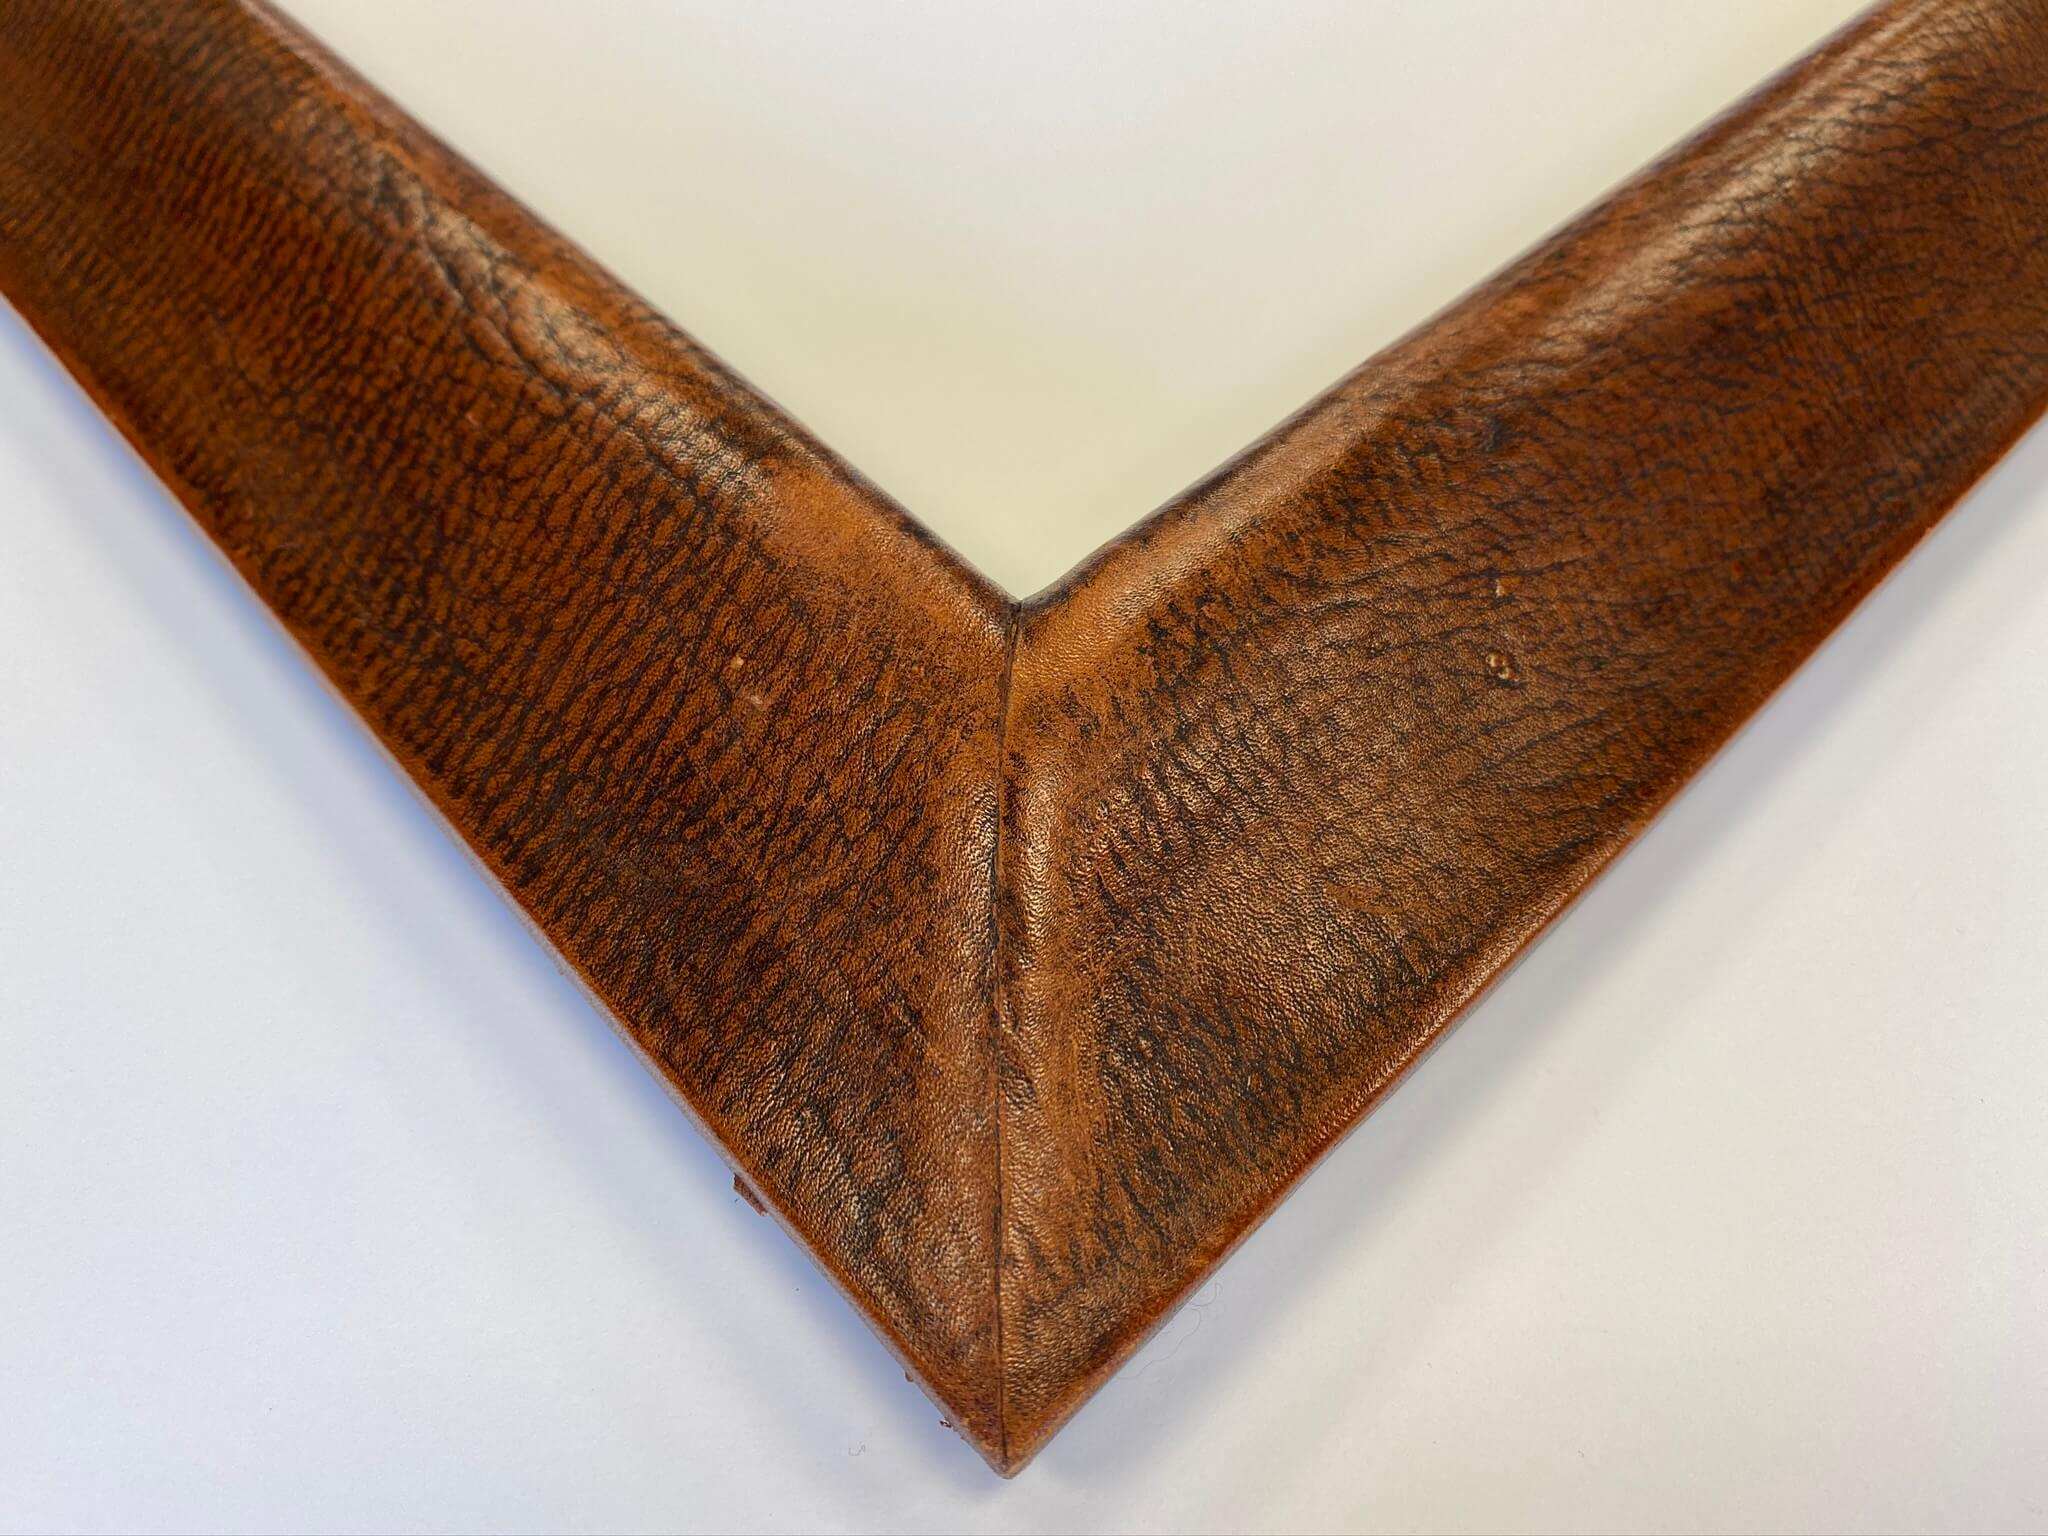 Aged brown leather custom frame chicago, custom frame nashville, April Hann Lanford Artmill Group